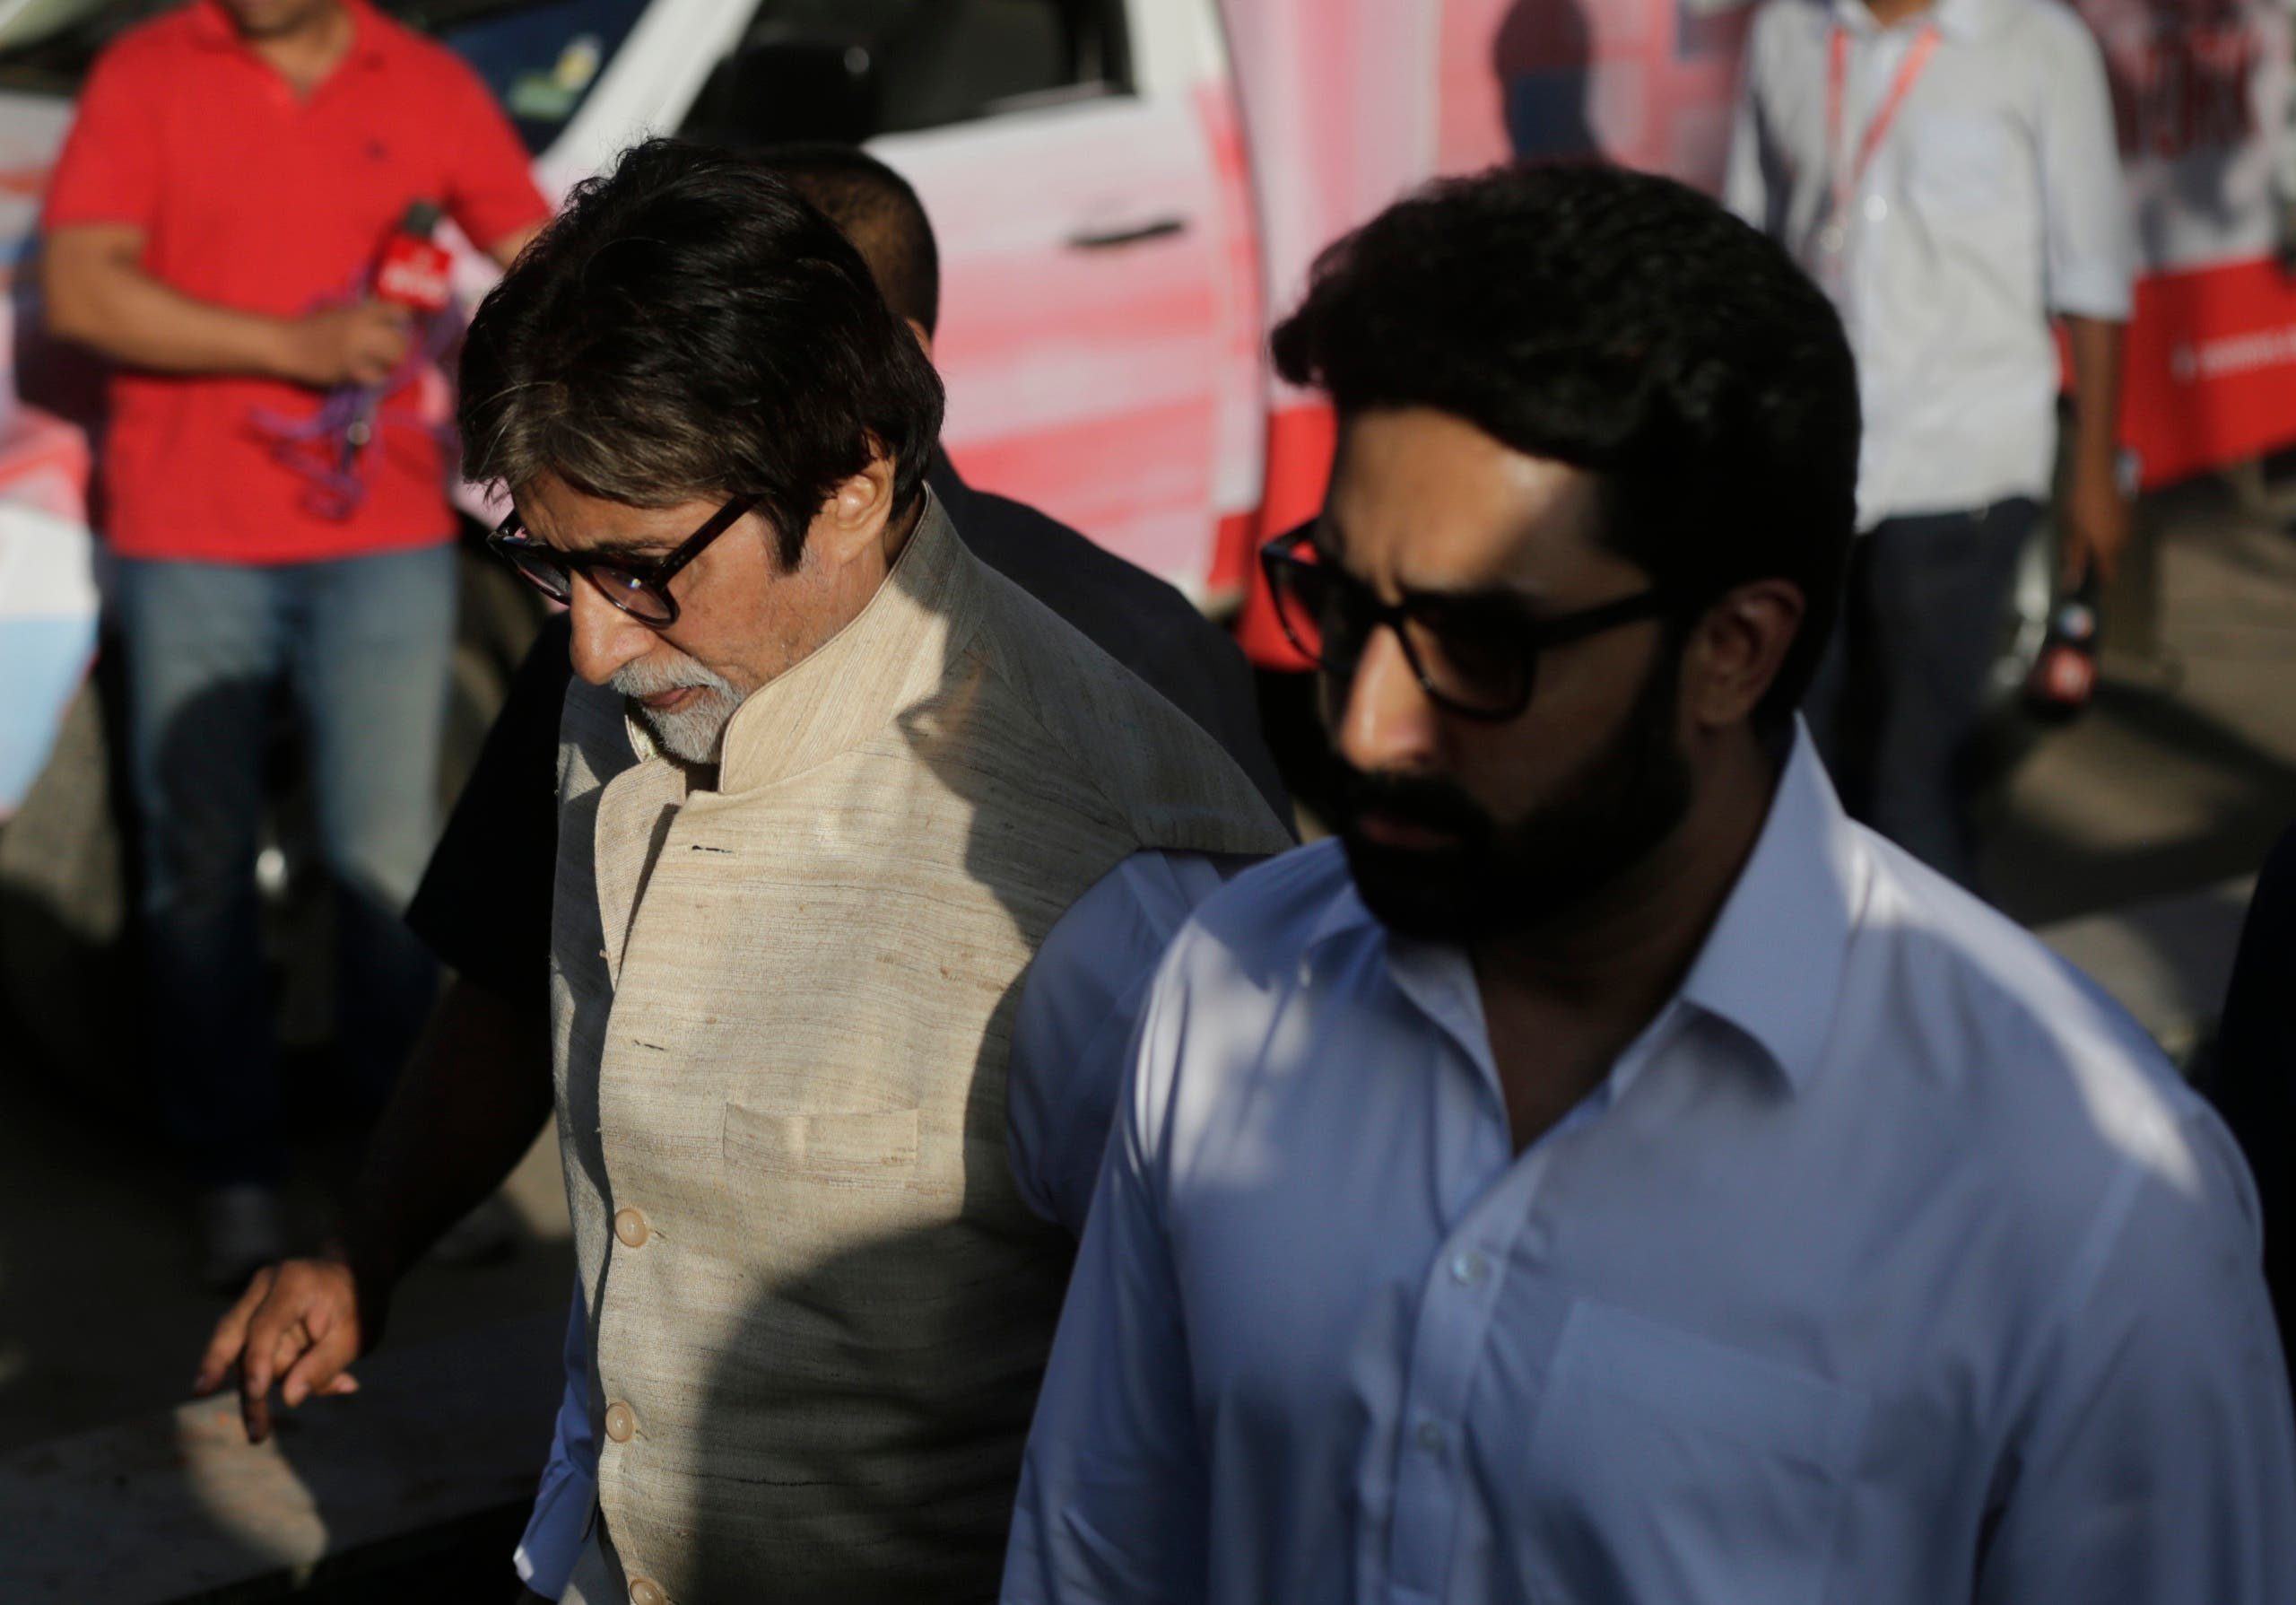 Bollywood actor Amitabh Bachchan and his son Abhishek Bachchan arrive to attend the funeral of Vinod Khanna in Mumbai on April 27, 2017. (AP)